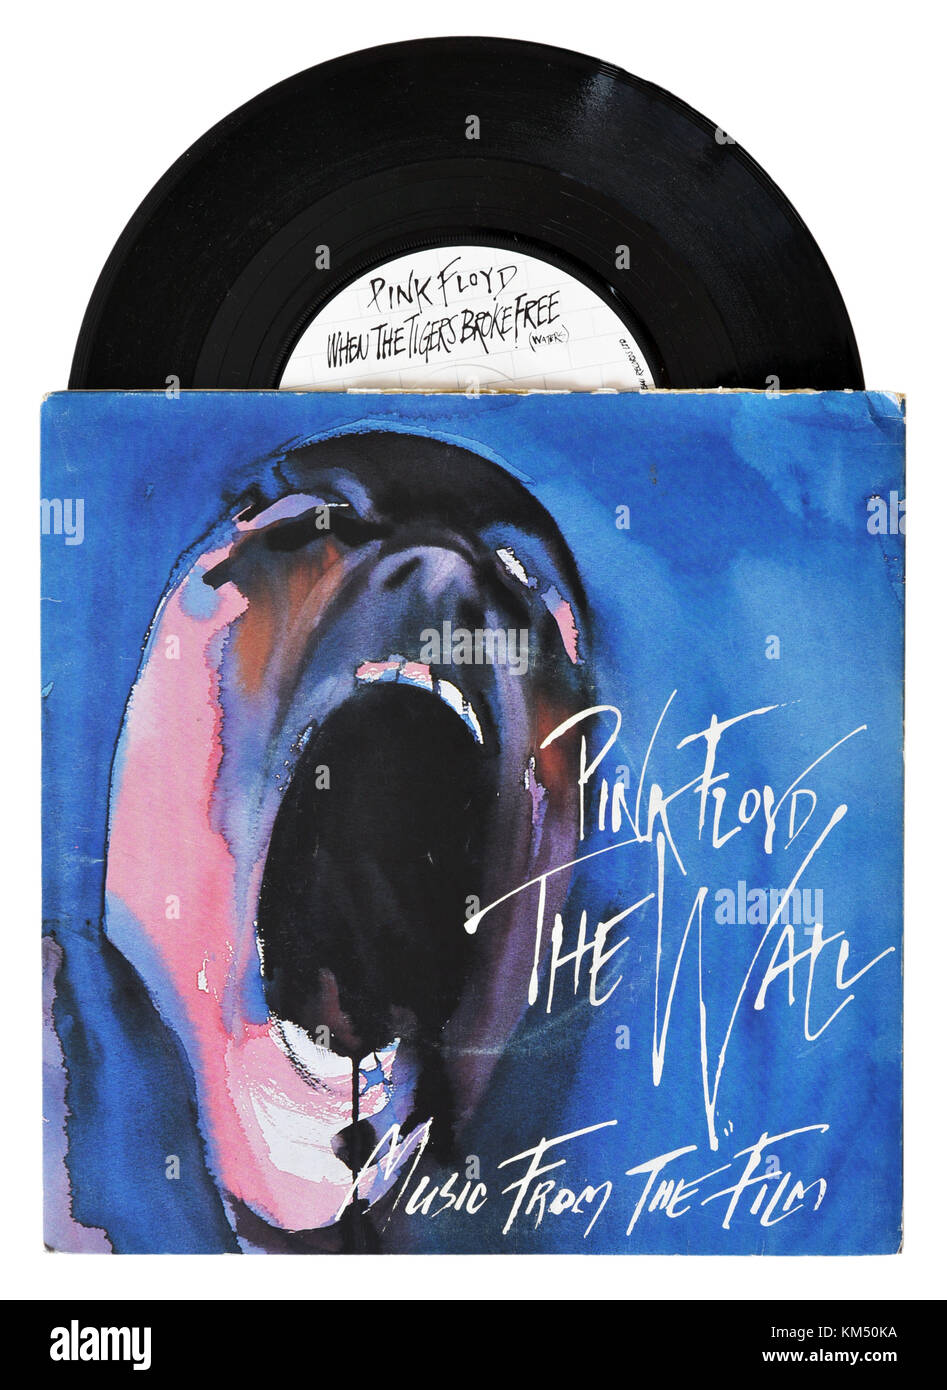 Pink Floyd When the Tigers Broke Free seven inch single - Stock Image